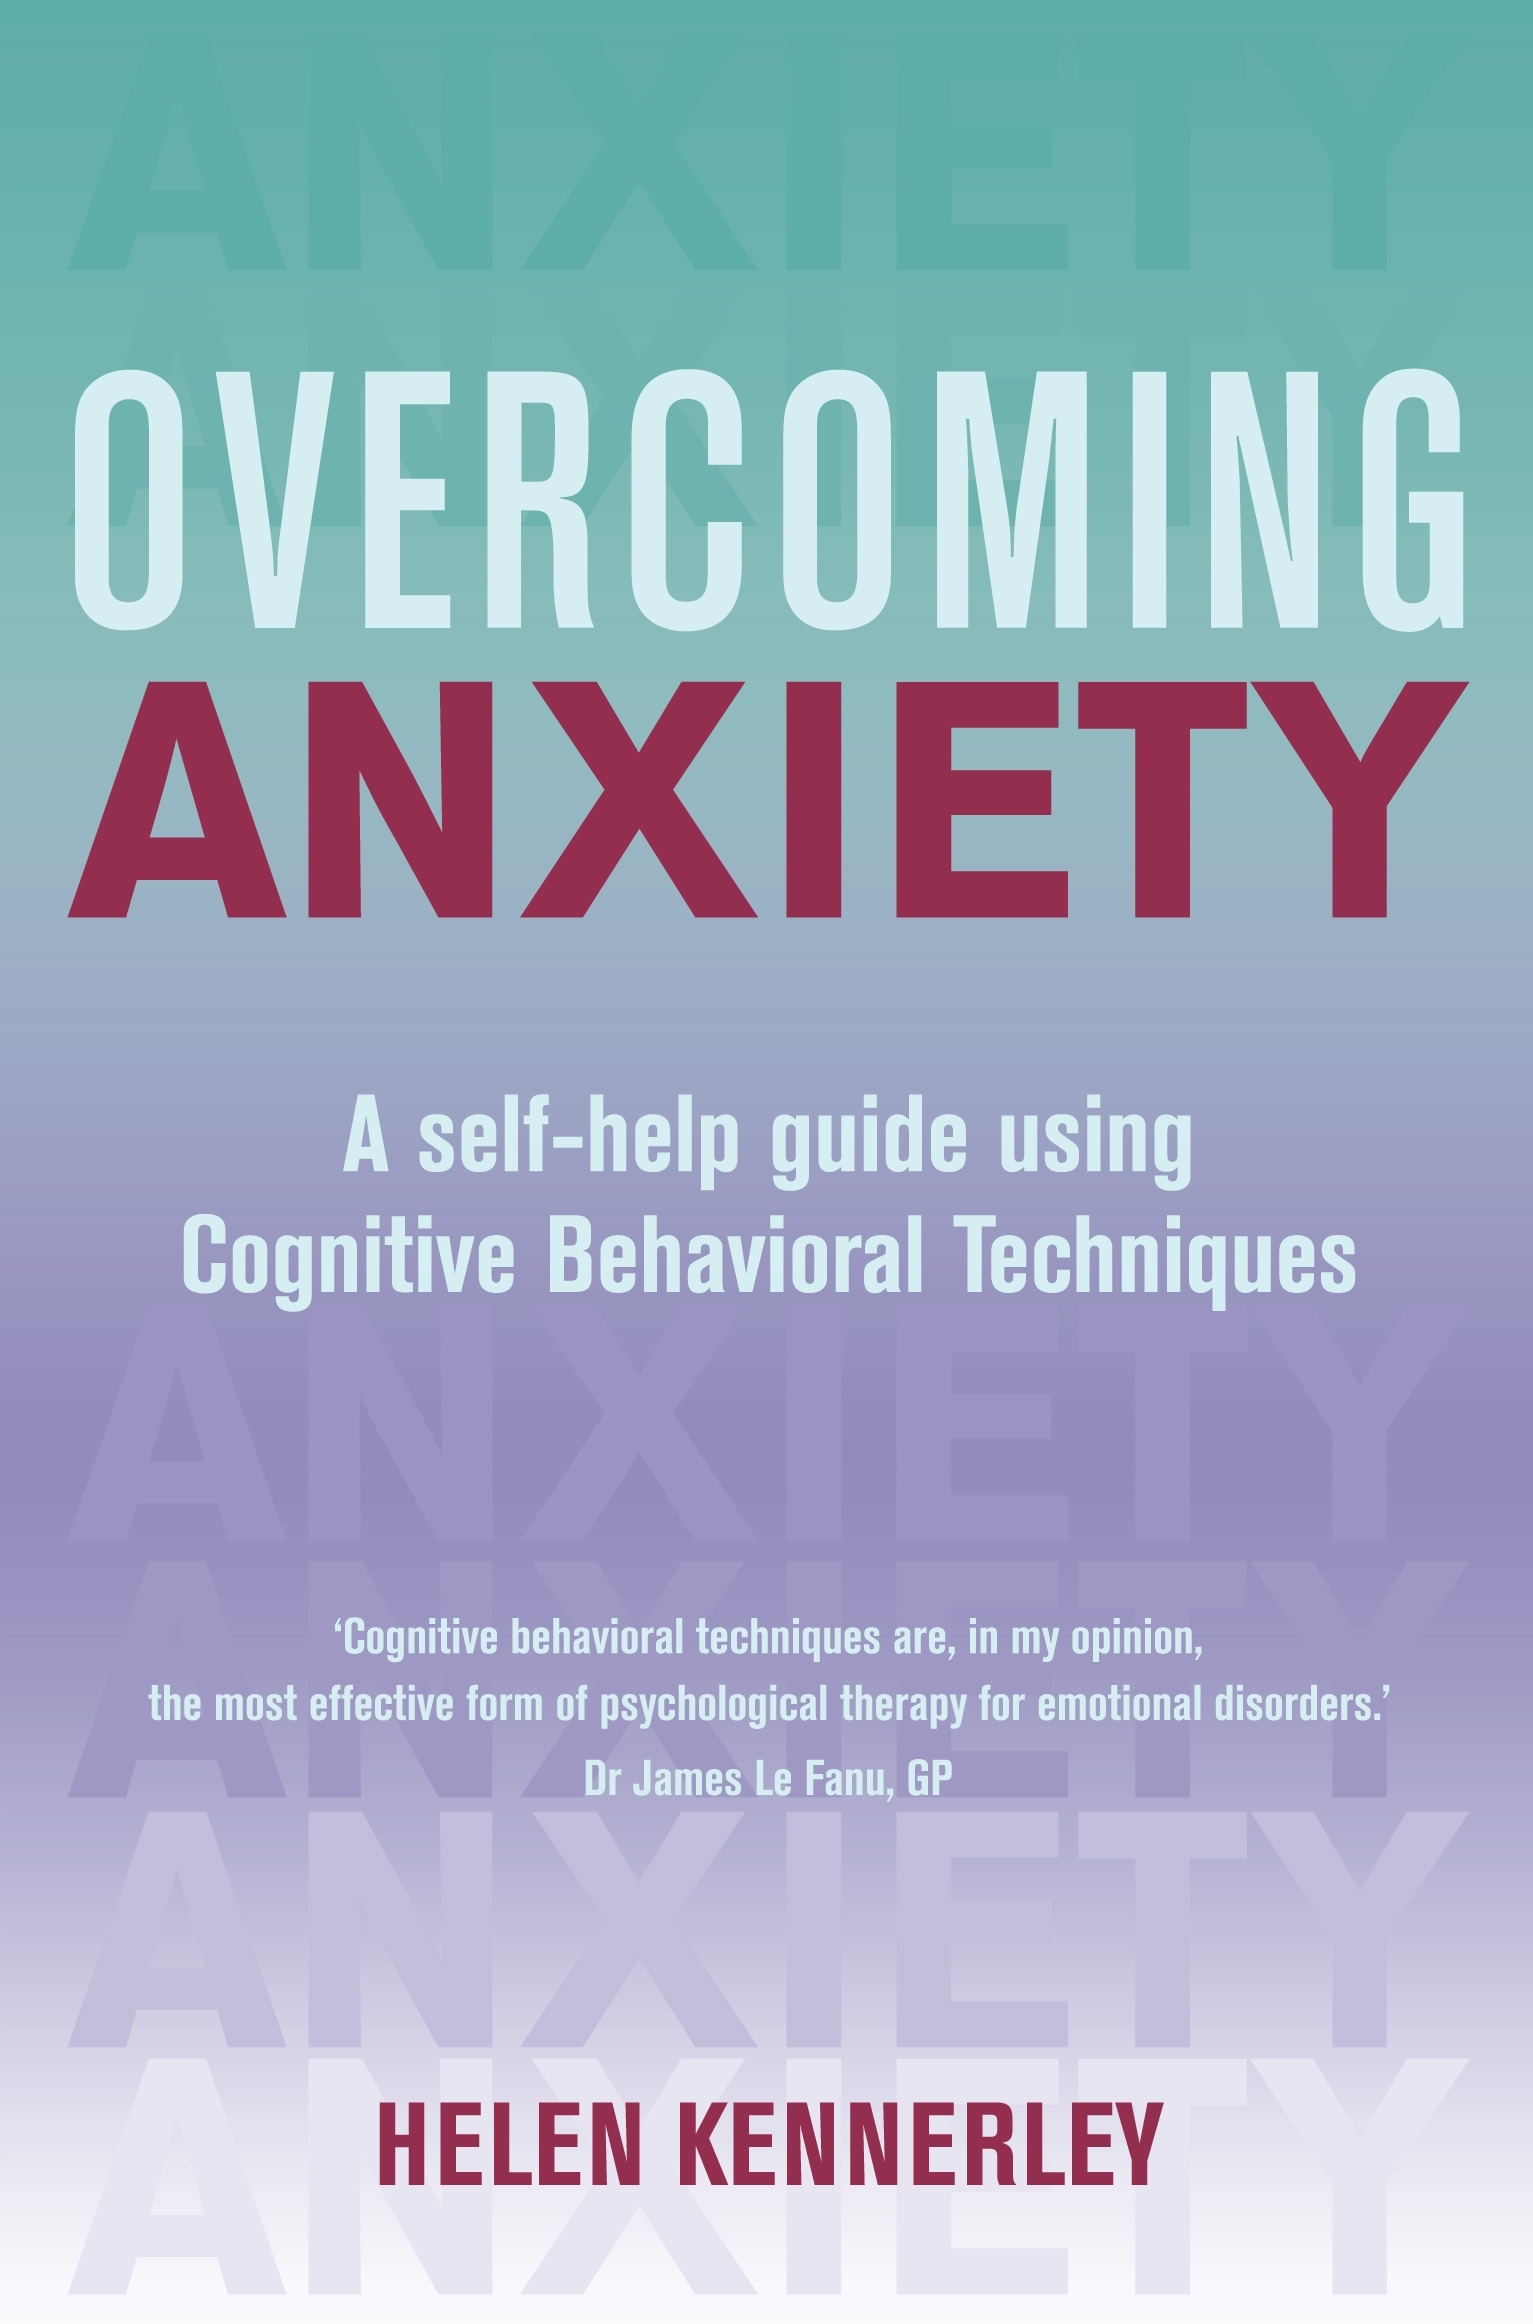 Overcoming Anxiety By: Helen Kennerley